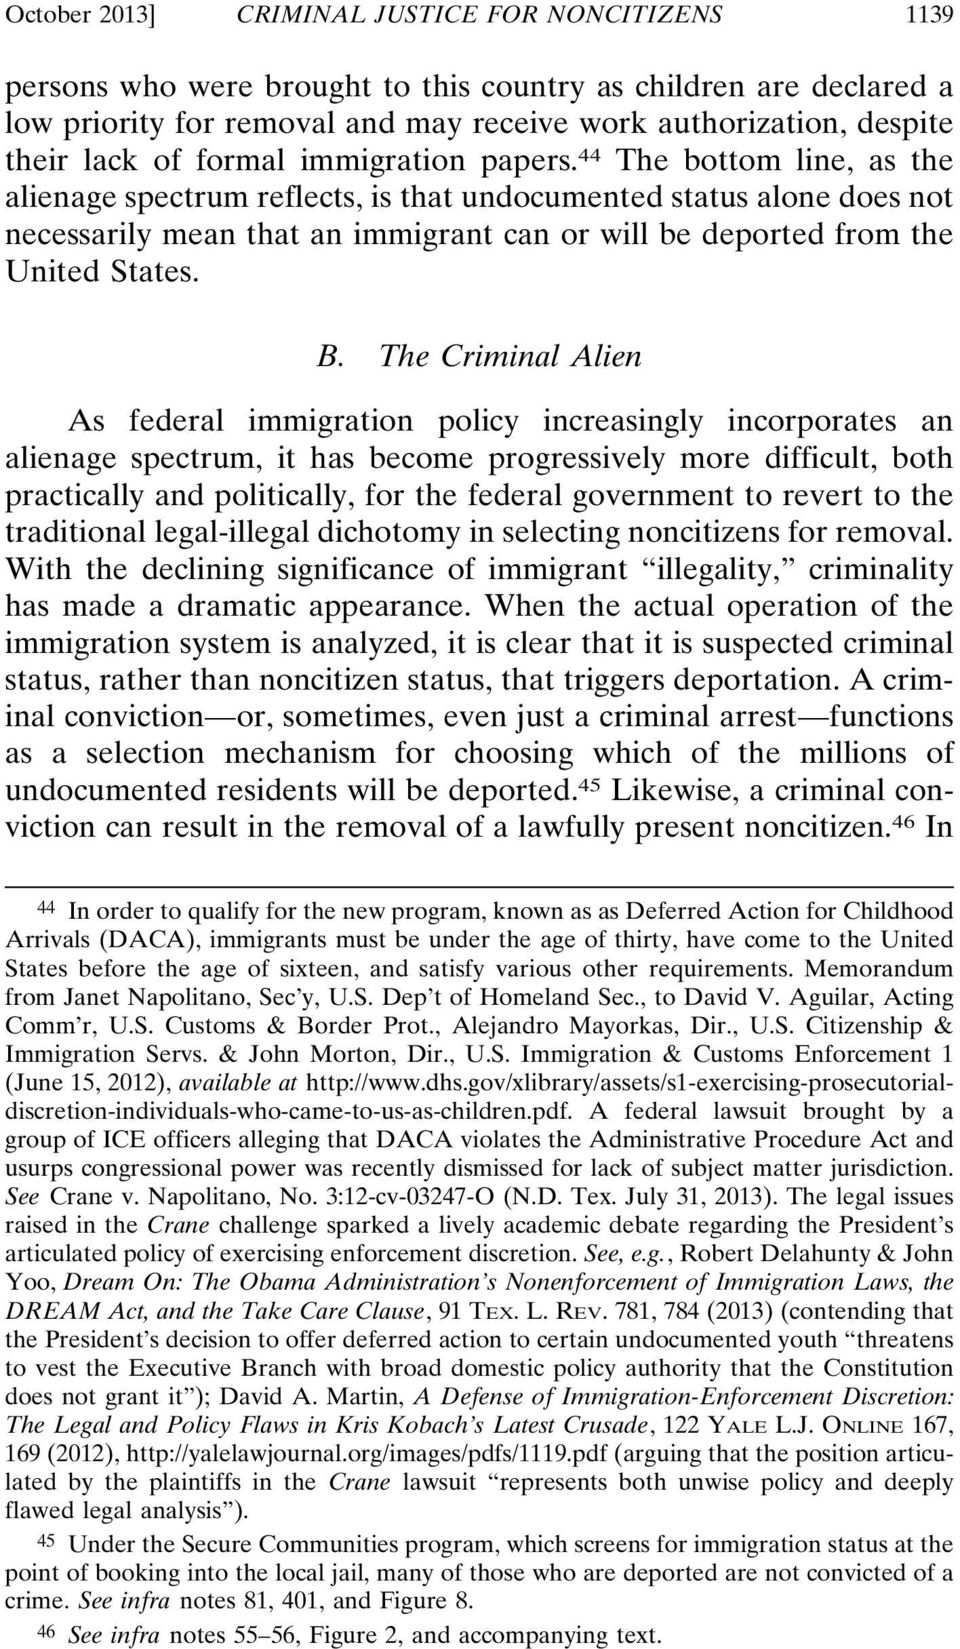 44 The bottom line, as the alienage spectrum reflects, is that undocumented status alone does not necessarily mean that an immigrant can or will be deported from the United States. B.